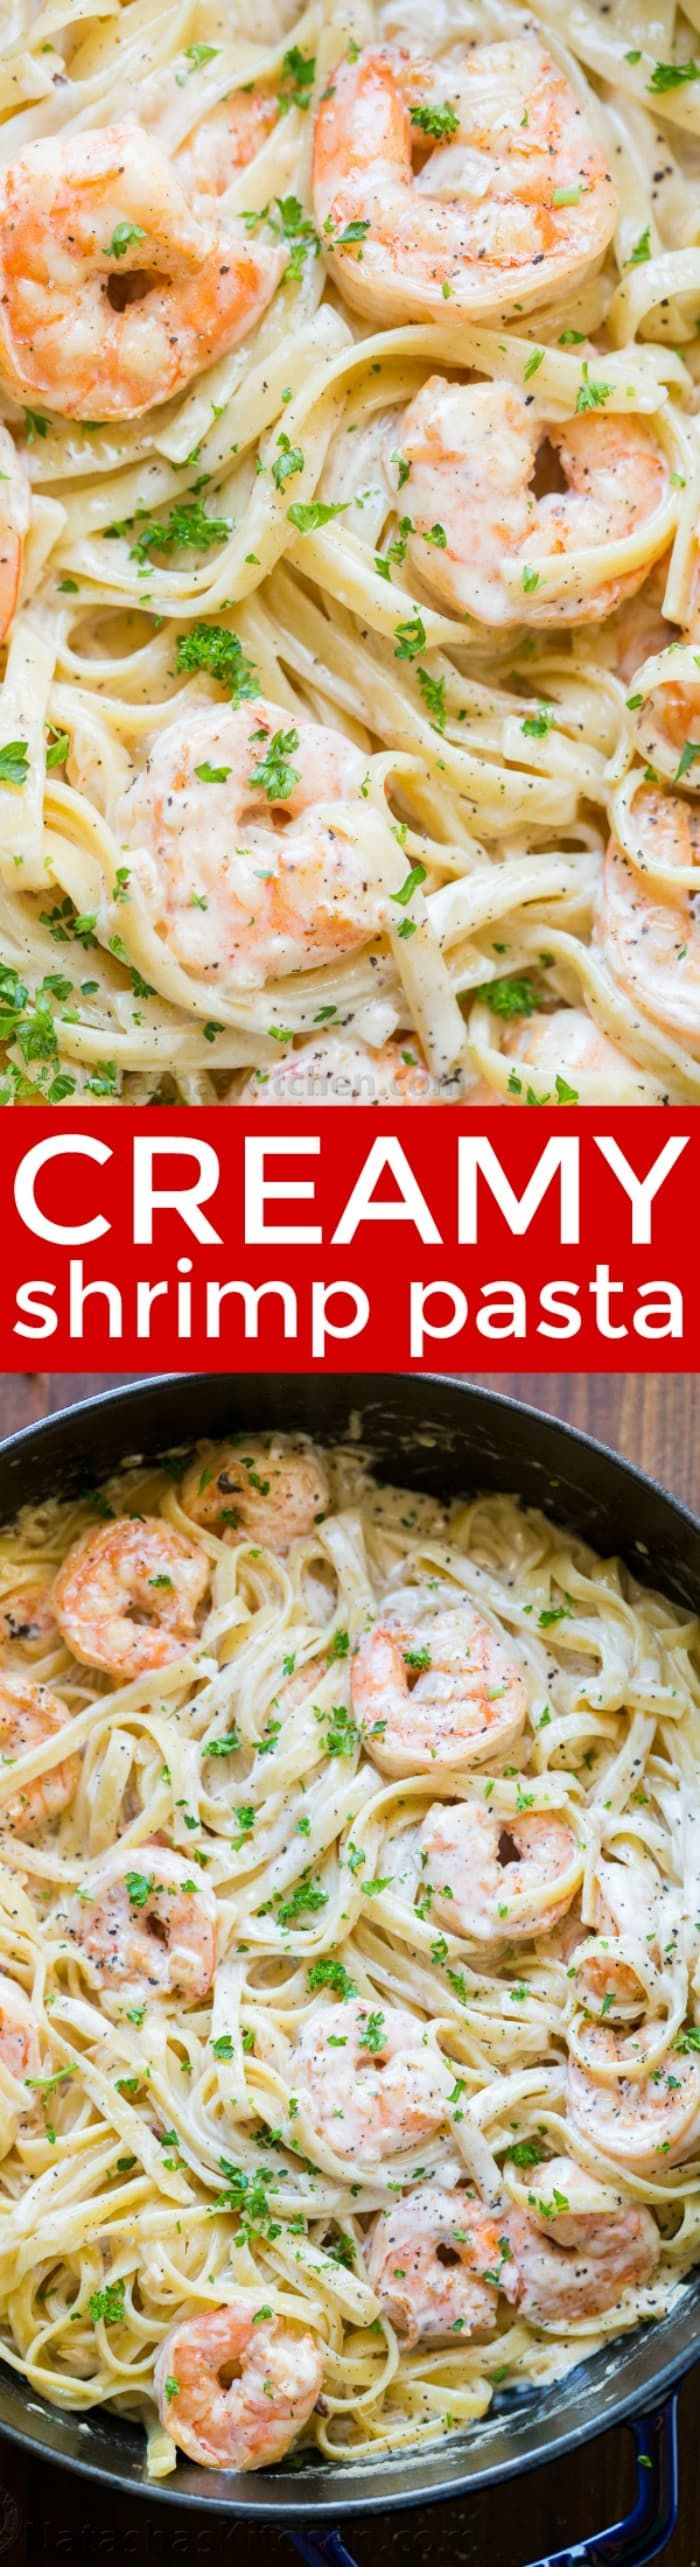 Creamy Shrimp Pasta reminds me of my favorite dish at Olive Garden with plump juicy shrimp and the easiest alfredo sauce. Rave reviews on this shrimp pasta! | natashaskitchen.com #shrimppasta